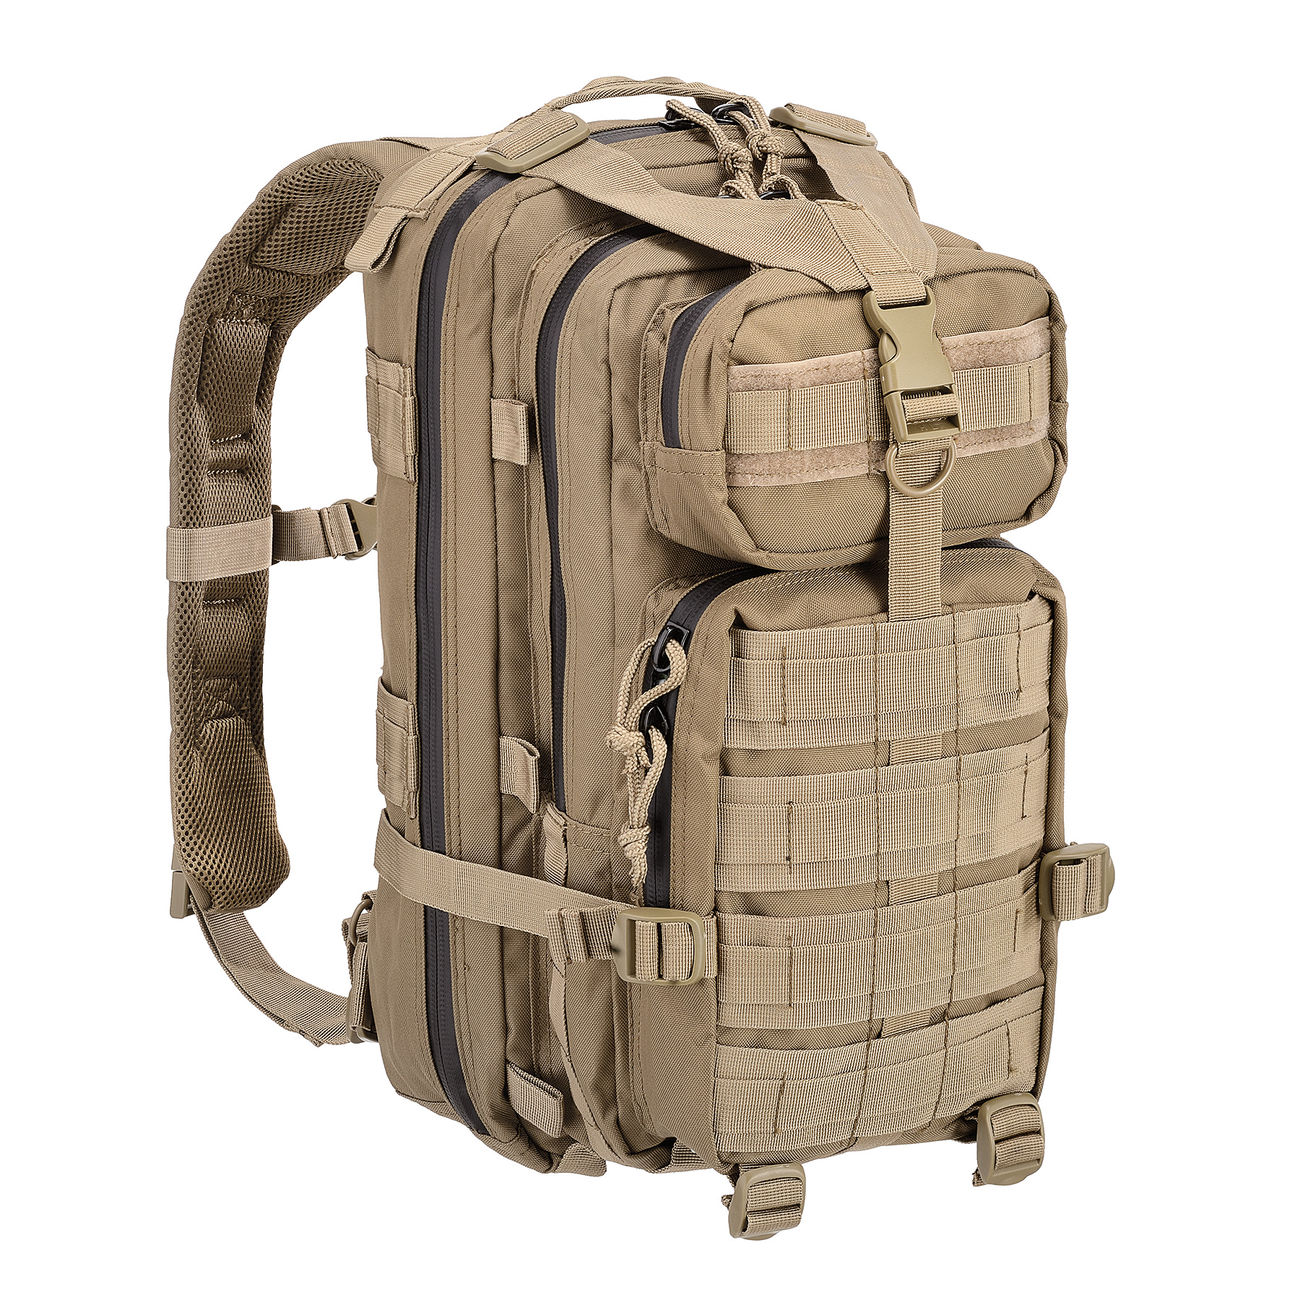 defcon 5 rucksack tactical 35 liter tan kotte zeller. Black Bedroom Furniture Sets. Home Design Ideas